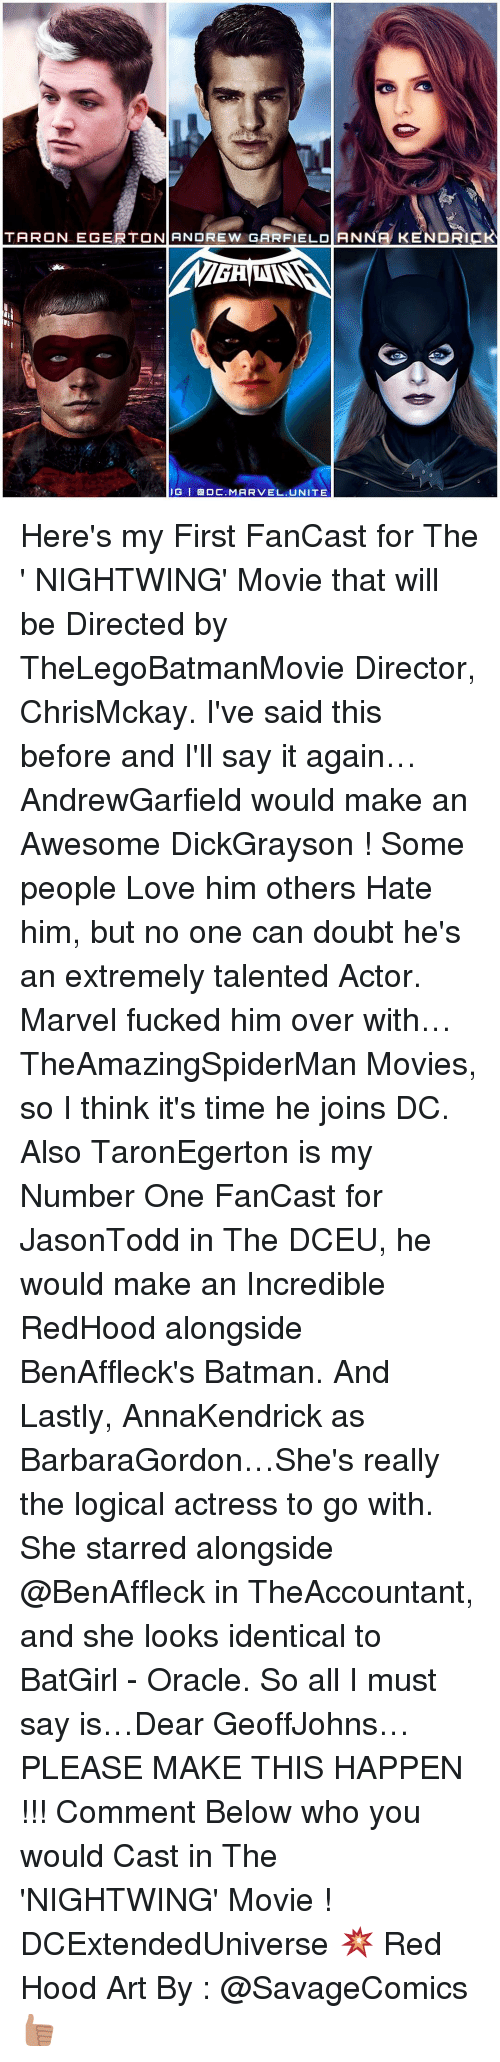 Awesomness: TARON EGERTON ANDREW GARFIELD ANNA KENDR  IG I a DC. MARVEL UNITE Here's my First FanCast for The ' NIGHTWING' Movie that will be Directed by TheLegoBatmanMovie Director, ChrisMckay. I've said this before and I'll say it again… AndrewGarfield would make an Awesome DickGrayson ! Some people Love him others Hate him, but no one can doubt he's an extremely talented Actor. Marvel fucked him over with… TheAmazingSpiderMan Movies, so I think it's time he joins DC. Also TaronEgerton is my Number One FanCast for JasonTodd in The DCEU, he would make an Incredible RedHood alongside BenAffleck's Batman. And Lastly, AnnaKendrick as BarbaraGordon…She's really the logical actress to go with. She starred alongside @BenAffleck in TheAccountant, and she looks identical to BatGirl - Oracle. So all I must say is…Dear GeoffJohns…PLEASE MAKE THIS HAPPEN !!! Comment Below who you would Cast in The 'NIGHTWING' Movie ! DCExtendedUniverse 💥 Red Hood Art By : @SavageComics 👍🏽